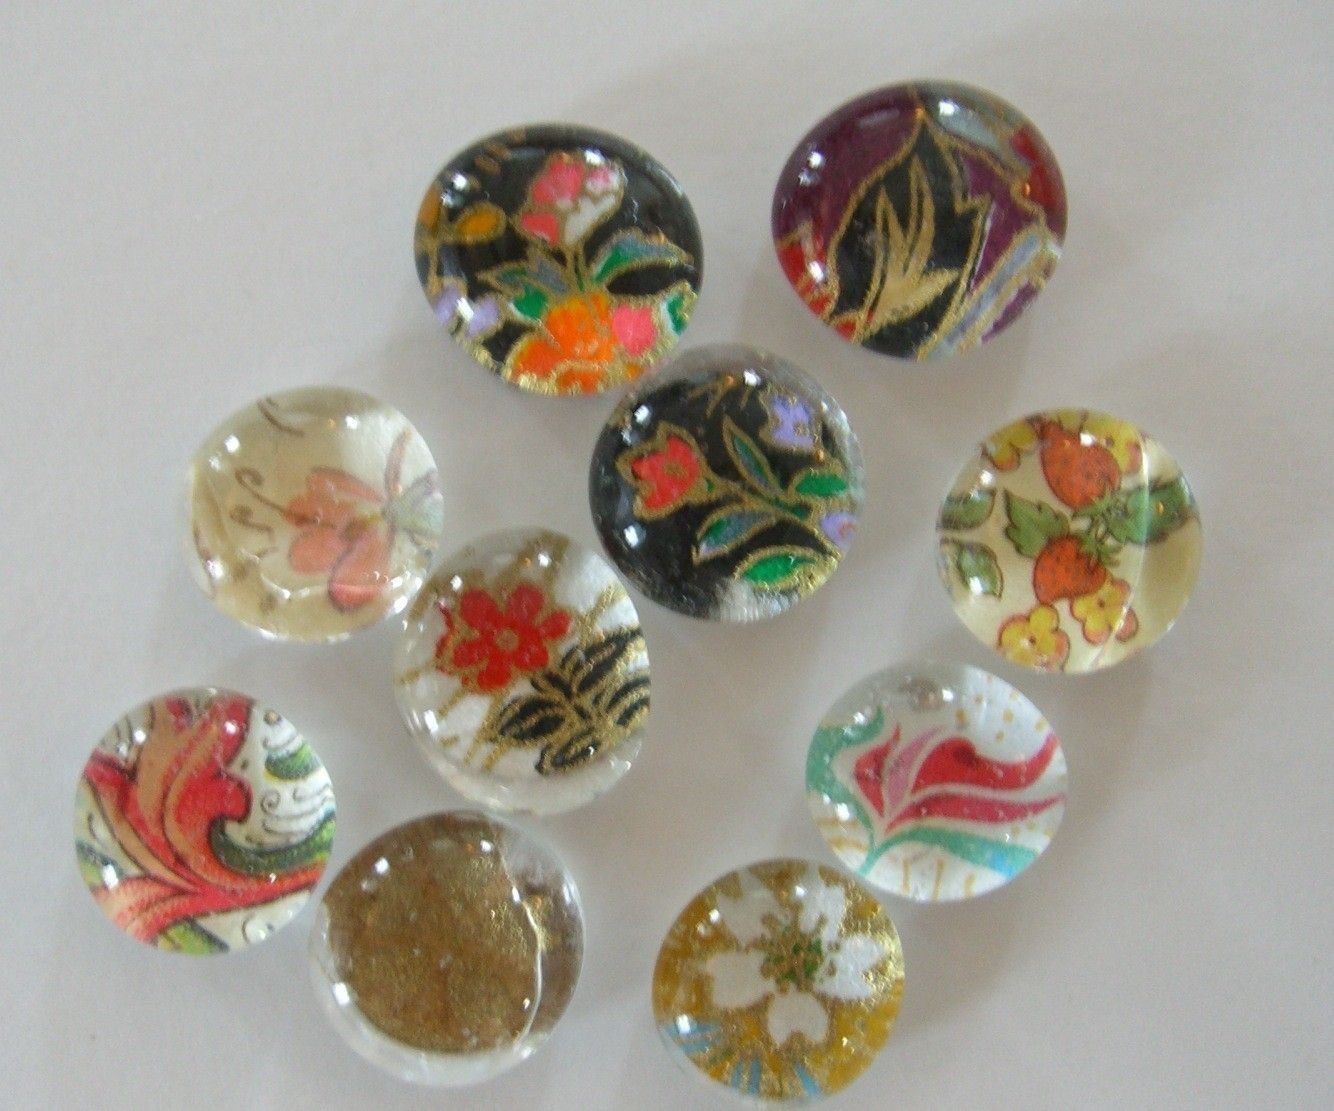 Flat glass marbles crafts - Flat Glass Marbles Crafts Flat Glass Marbles Crafts Clearance 200 Flat Back Glass Marbles For